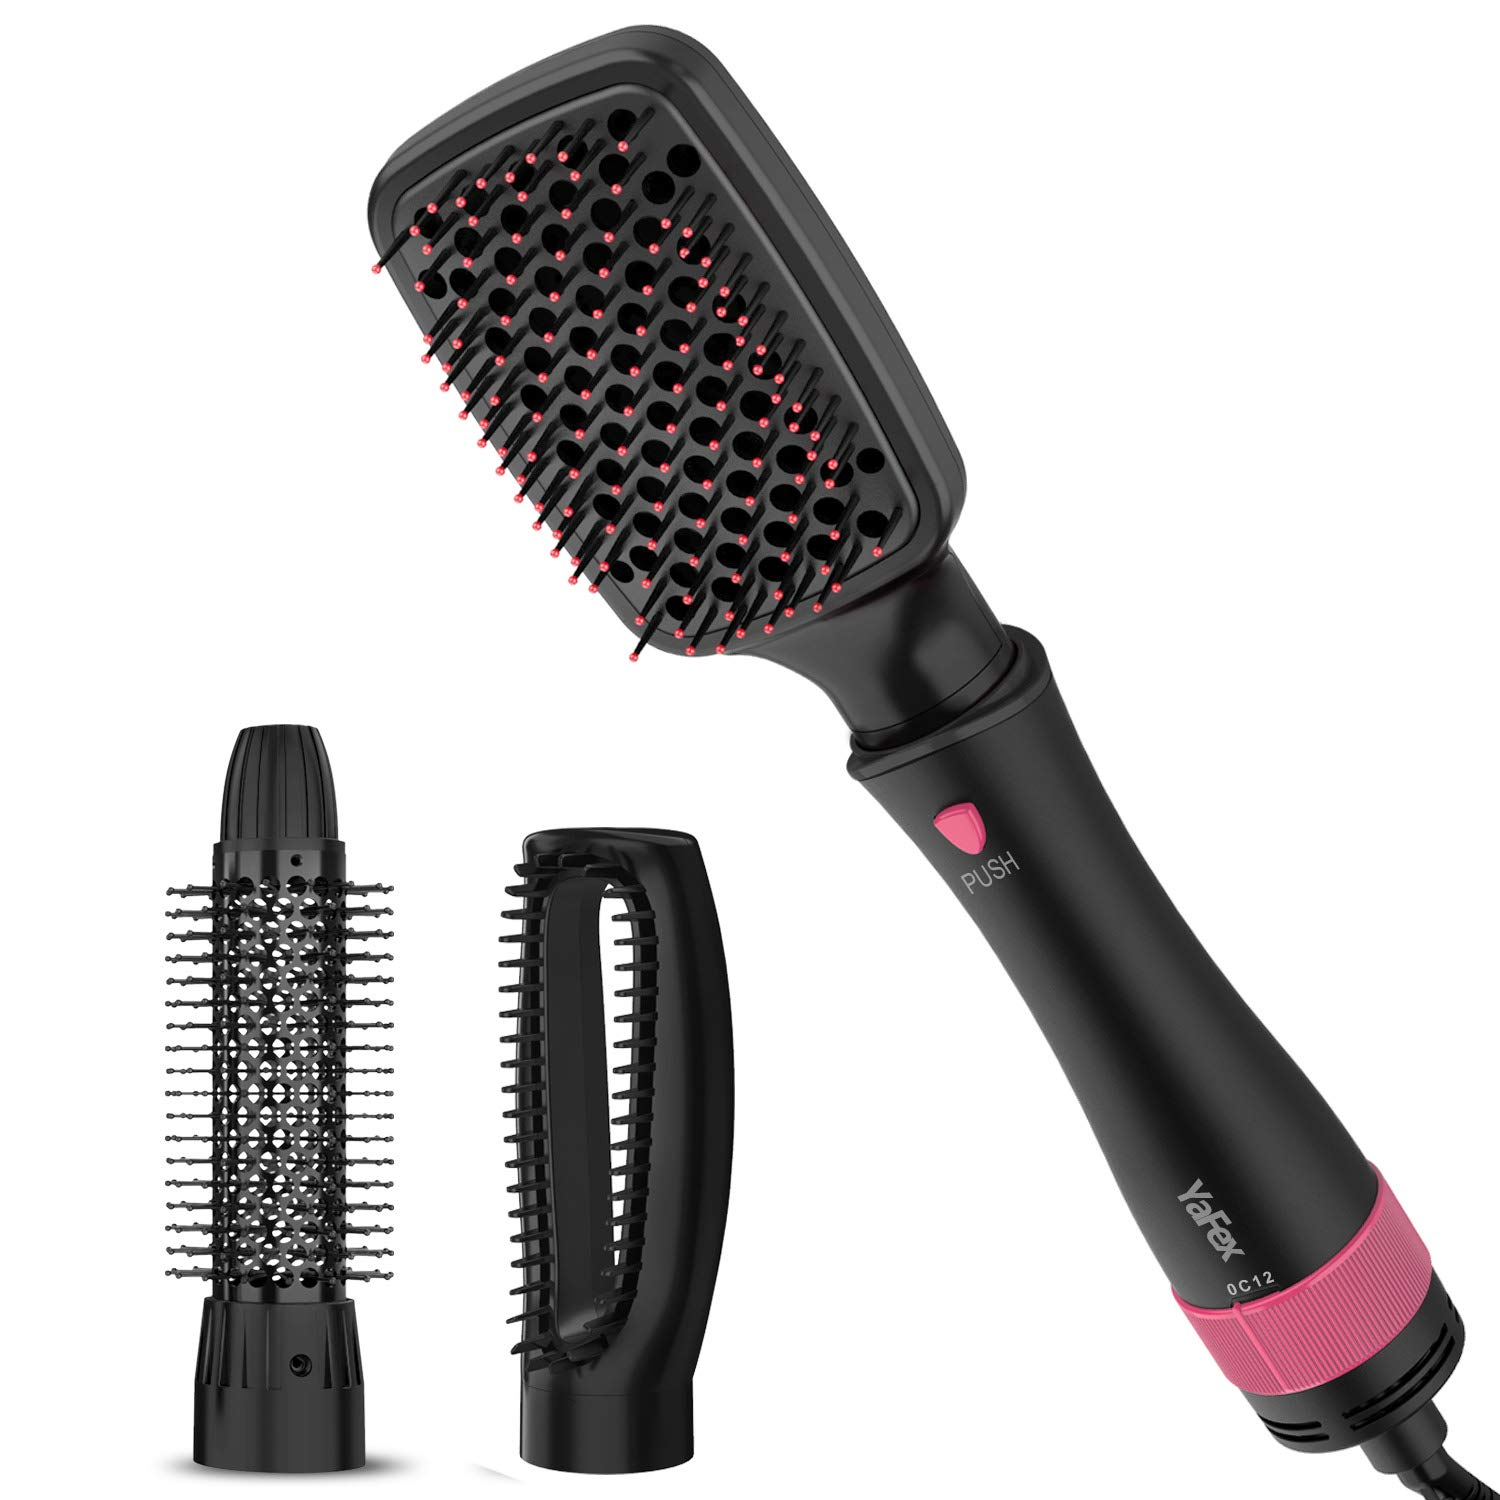 One Step Hair Dryer Styler and Volumizer - YaFex 3 in 1 Ionic Hot Air Brush, Blow Dryer Brush, Hair Curler and Straightener for All Hair Types by YaFex